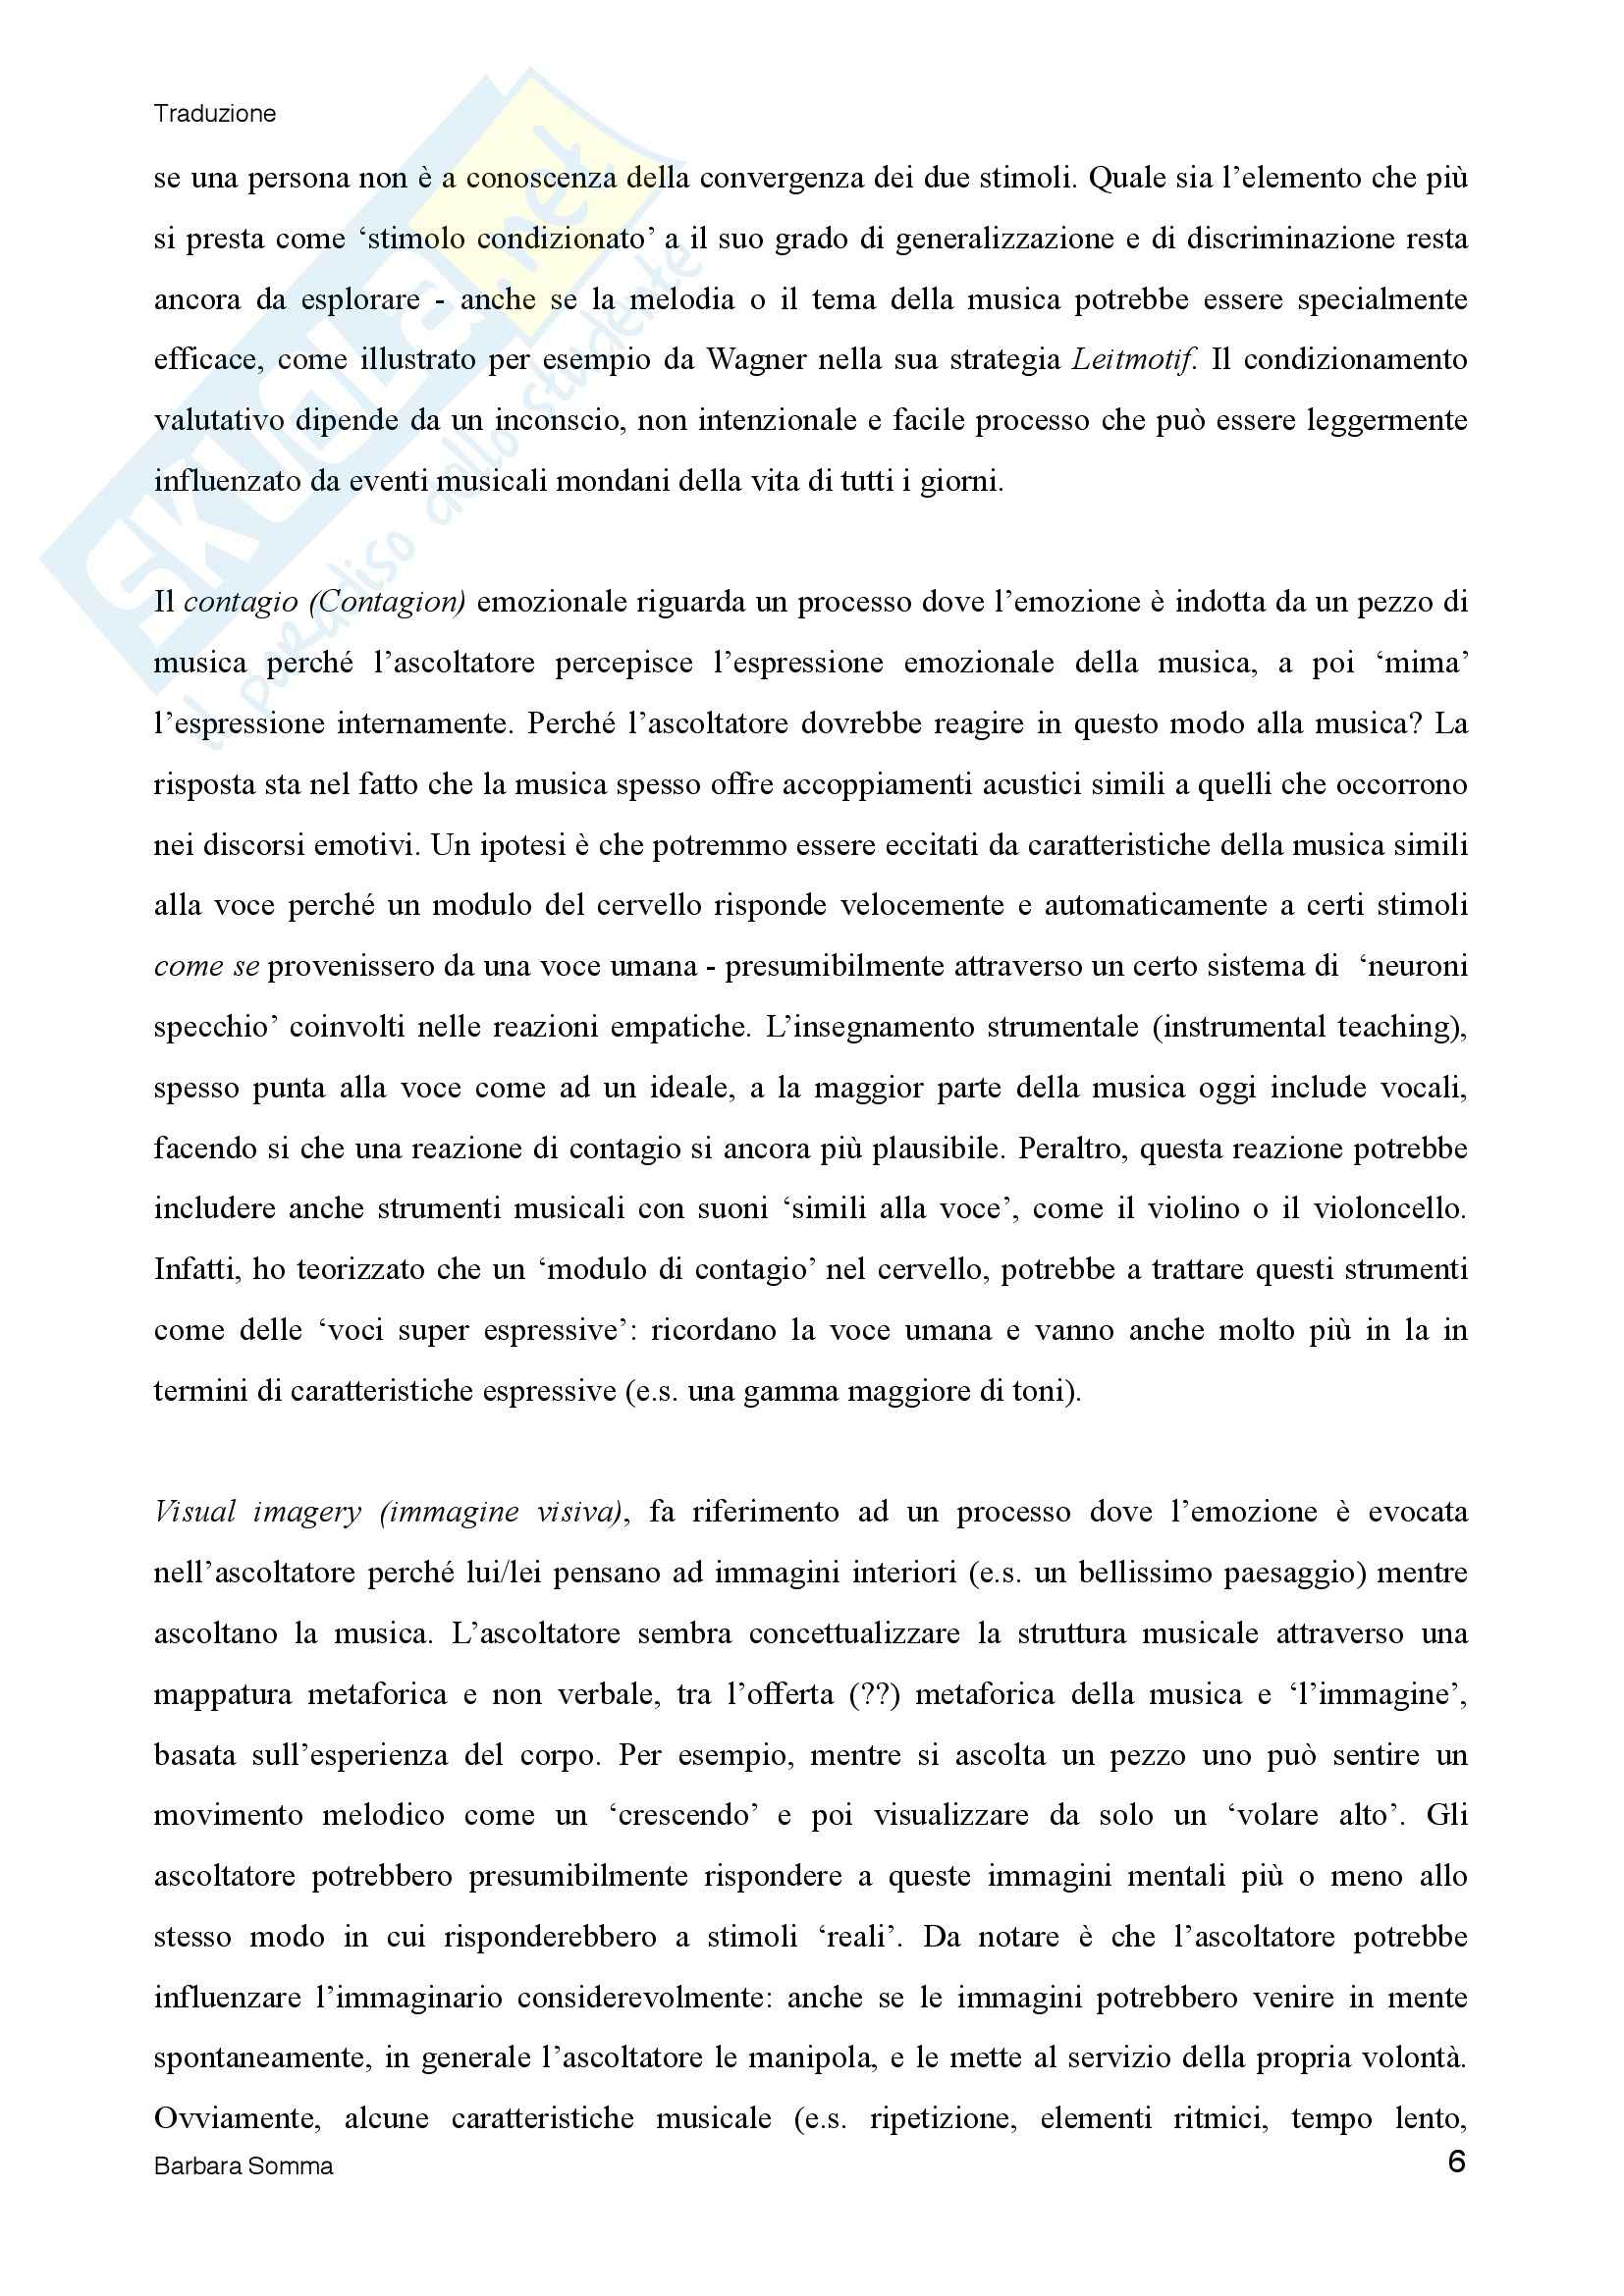 Music and Emotion- 7 questions 7 answers (Traduzione) Pag. 6